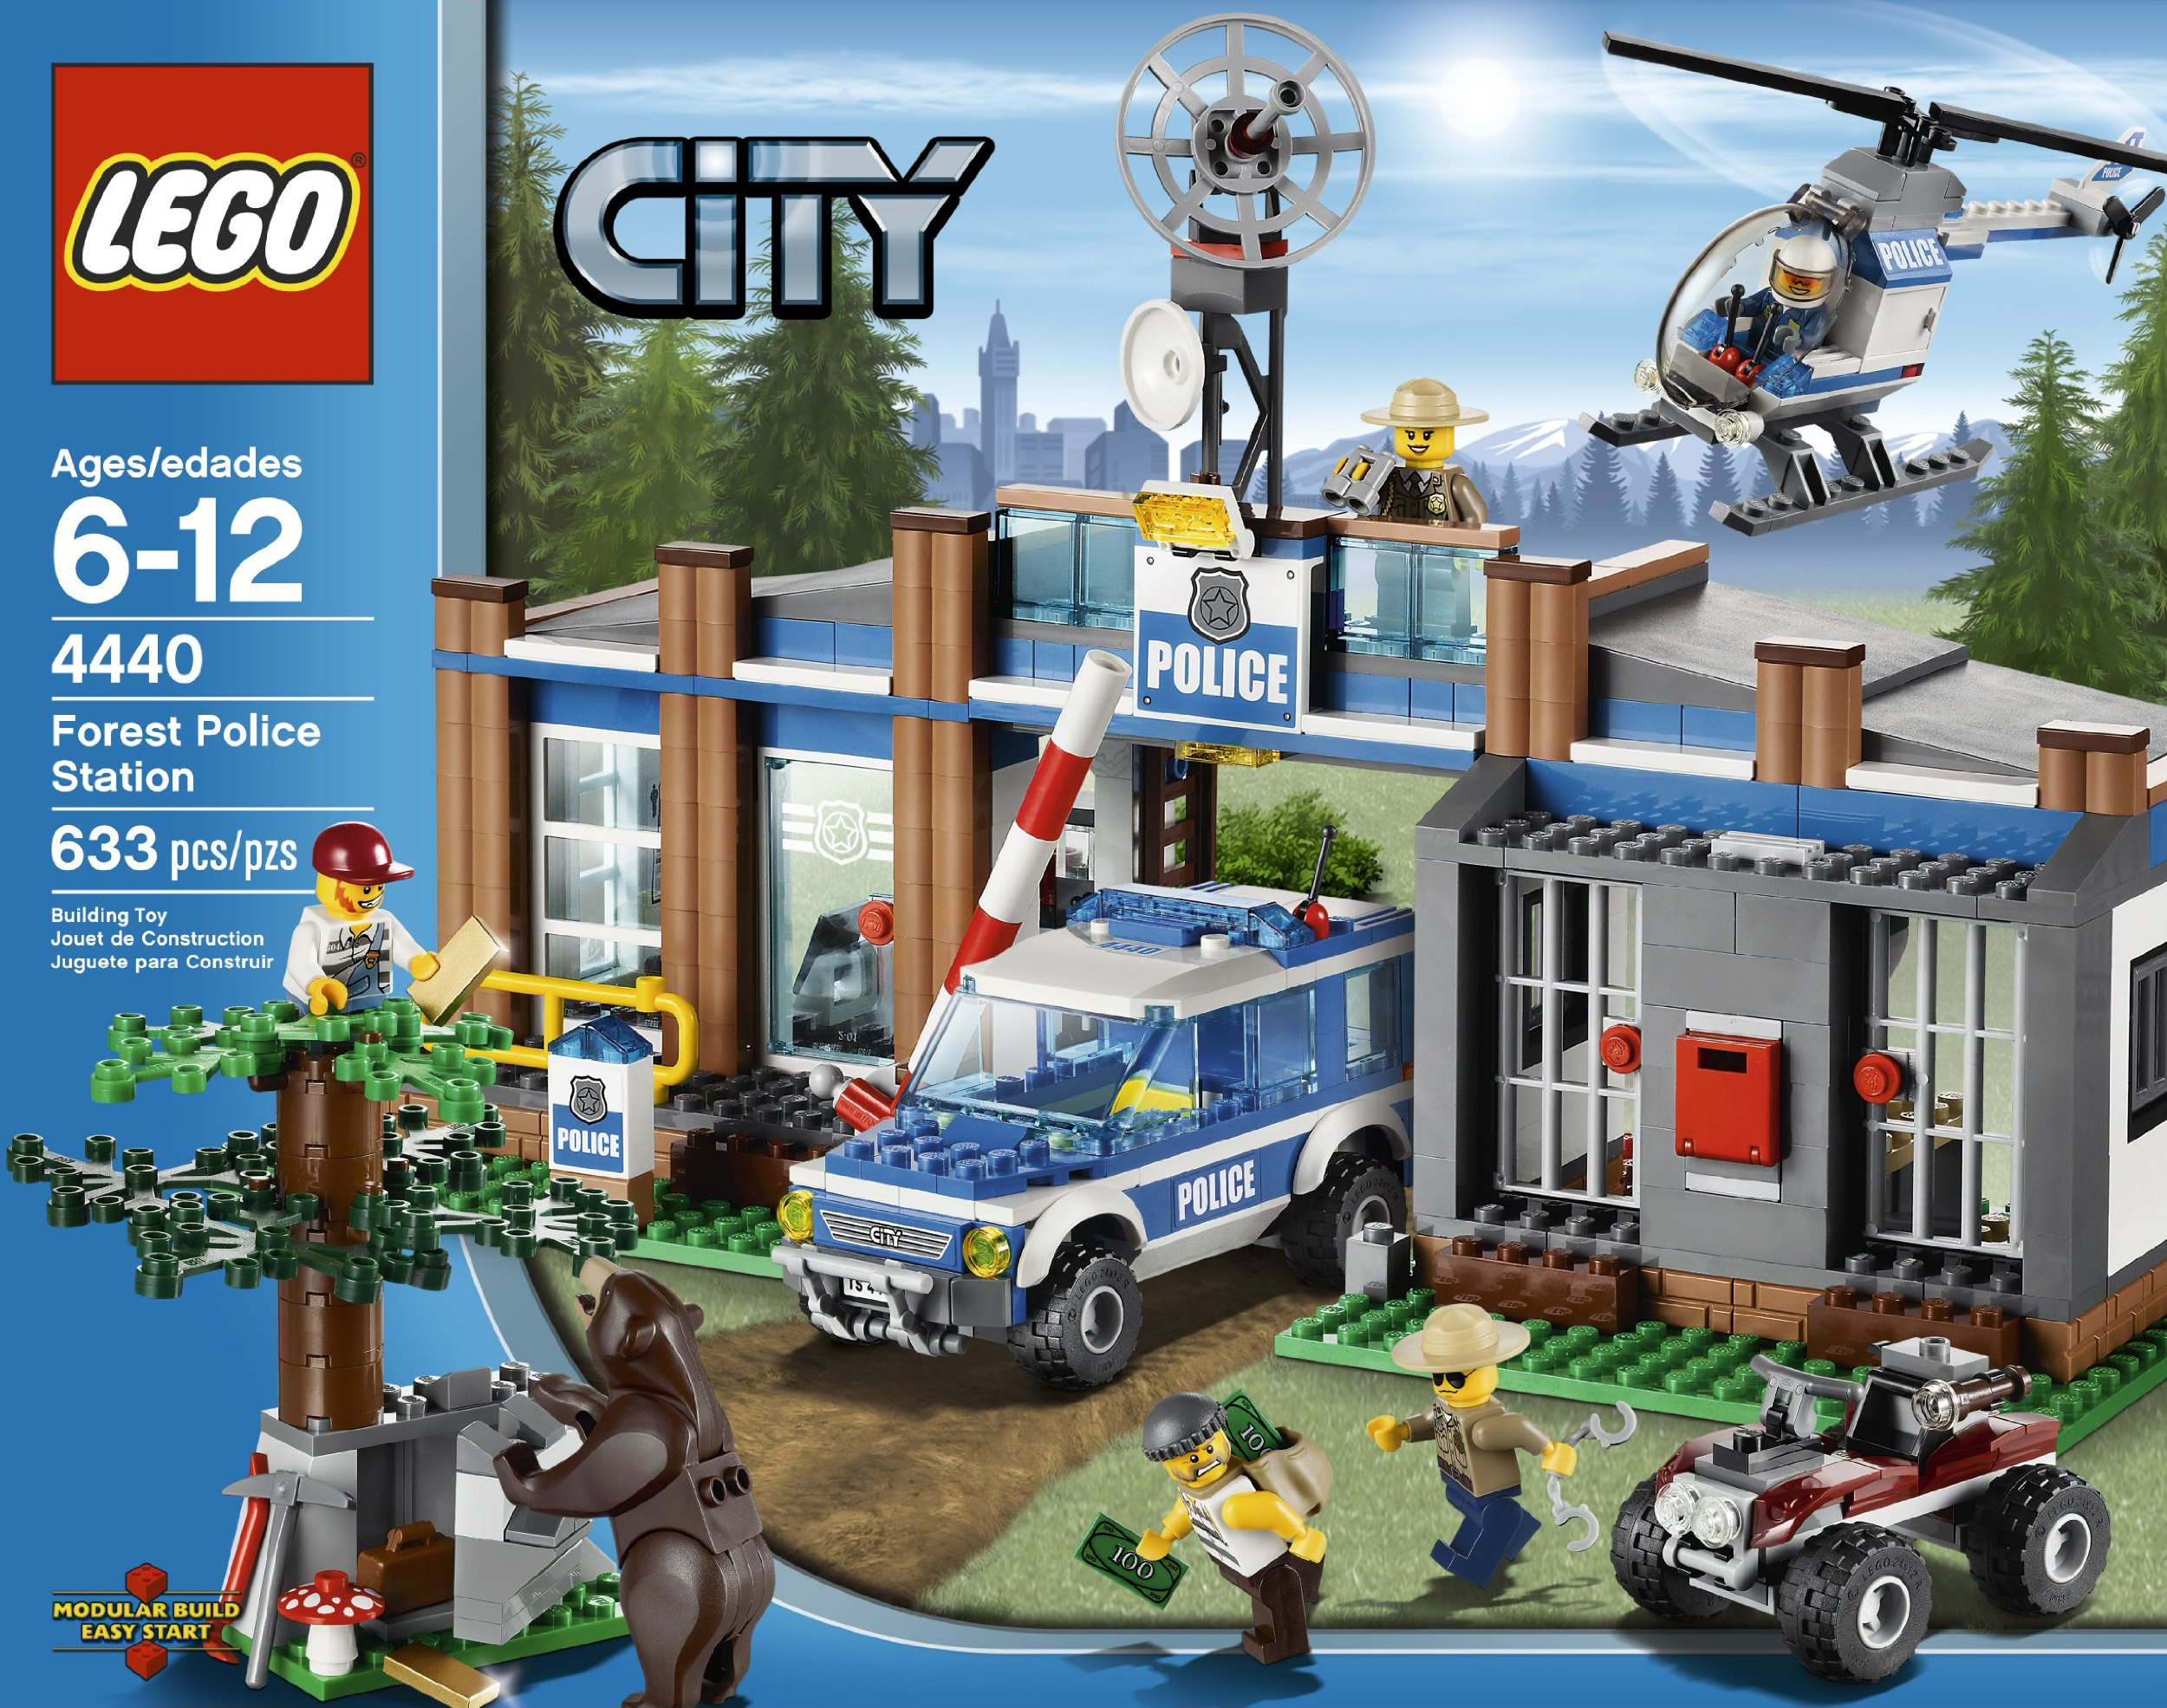 2012 lego city sets bring hillbillies bears forest fires. Black Bedroom Furniture Sets. Home Design Ideas